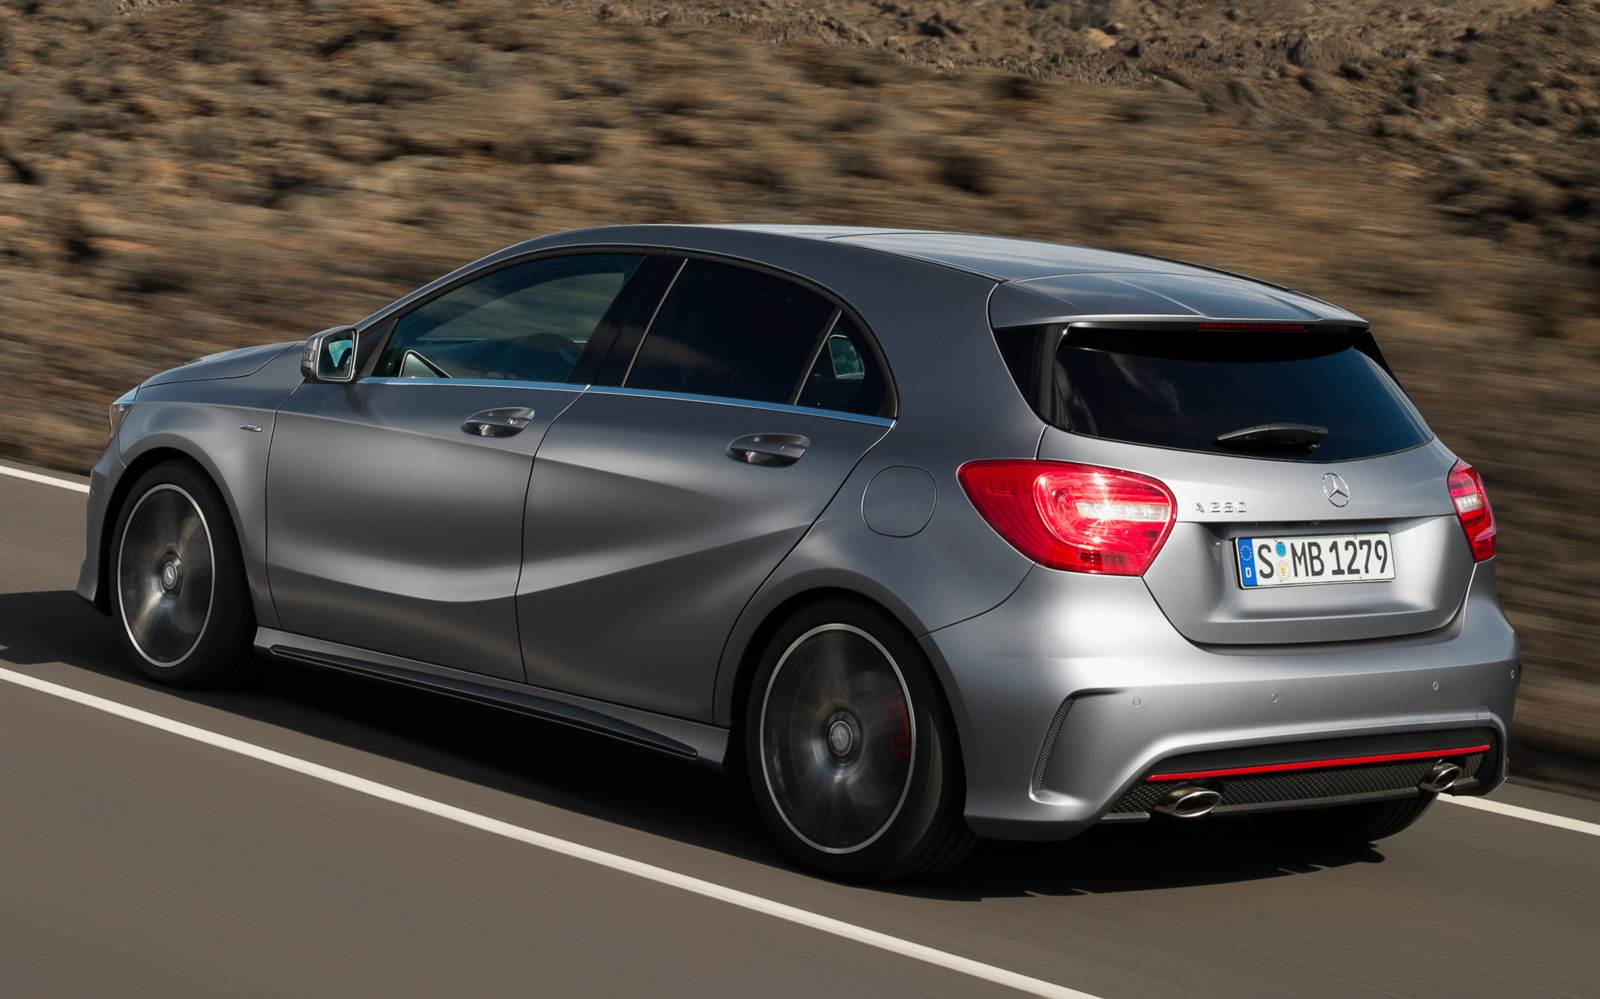 Mercedes a250 bem mais caro por m inferior ao golf gti for Mercedes benz brasil